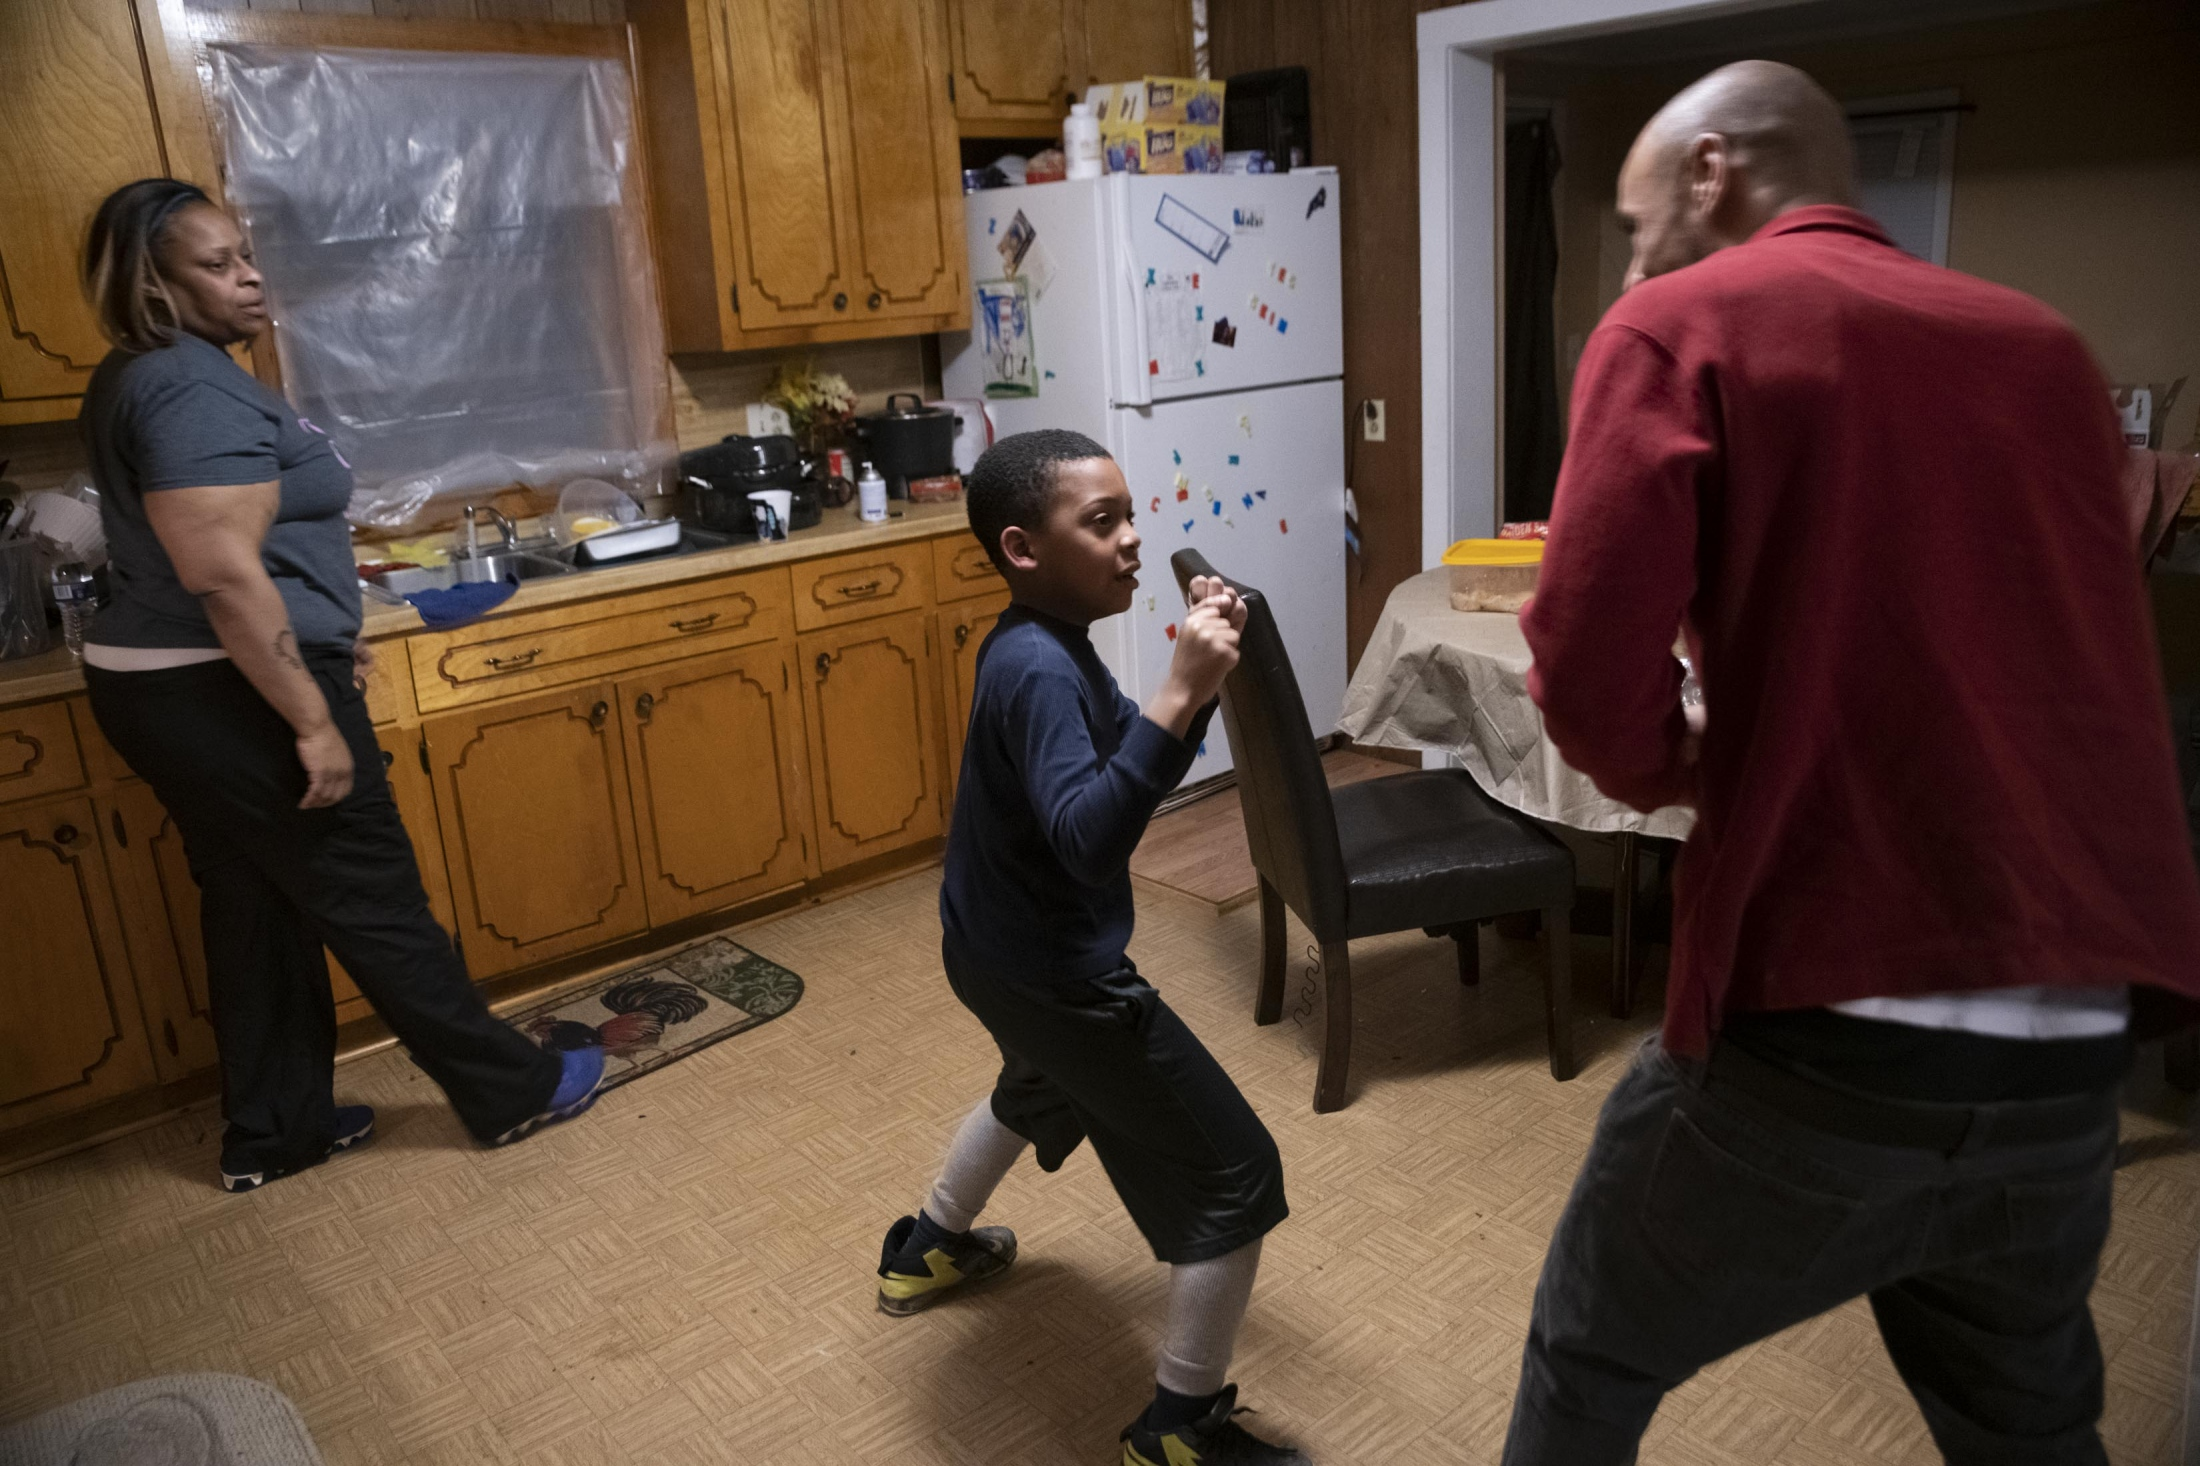 Ma'Khi and Morrice play fight, toughening him up for karate and football.